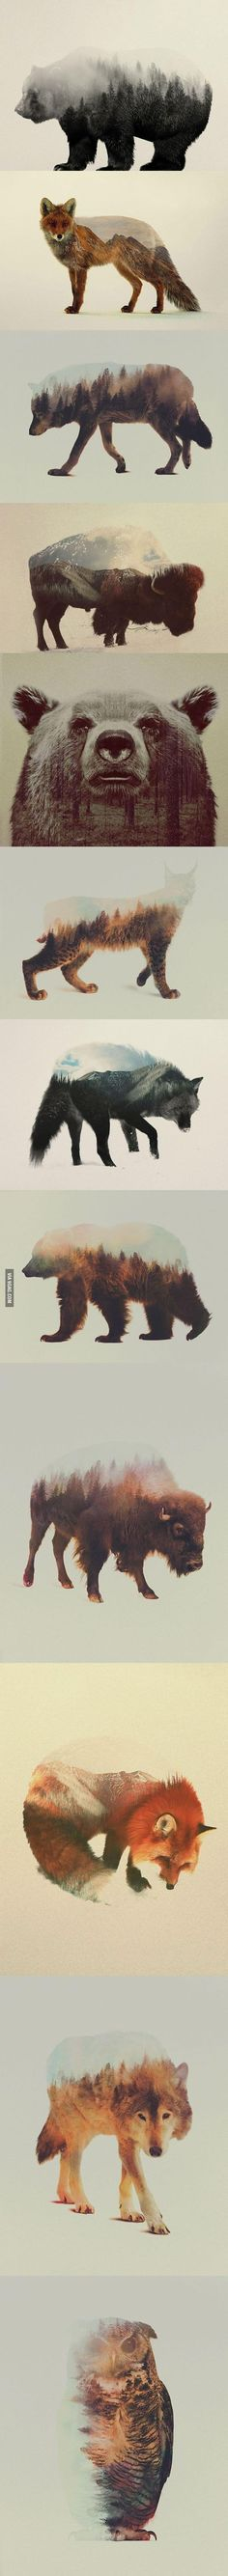 Double Exposure Portraits of Animals Reflecting Their Habitat by Andreas Lie | DailyFailCenter